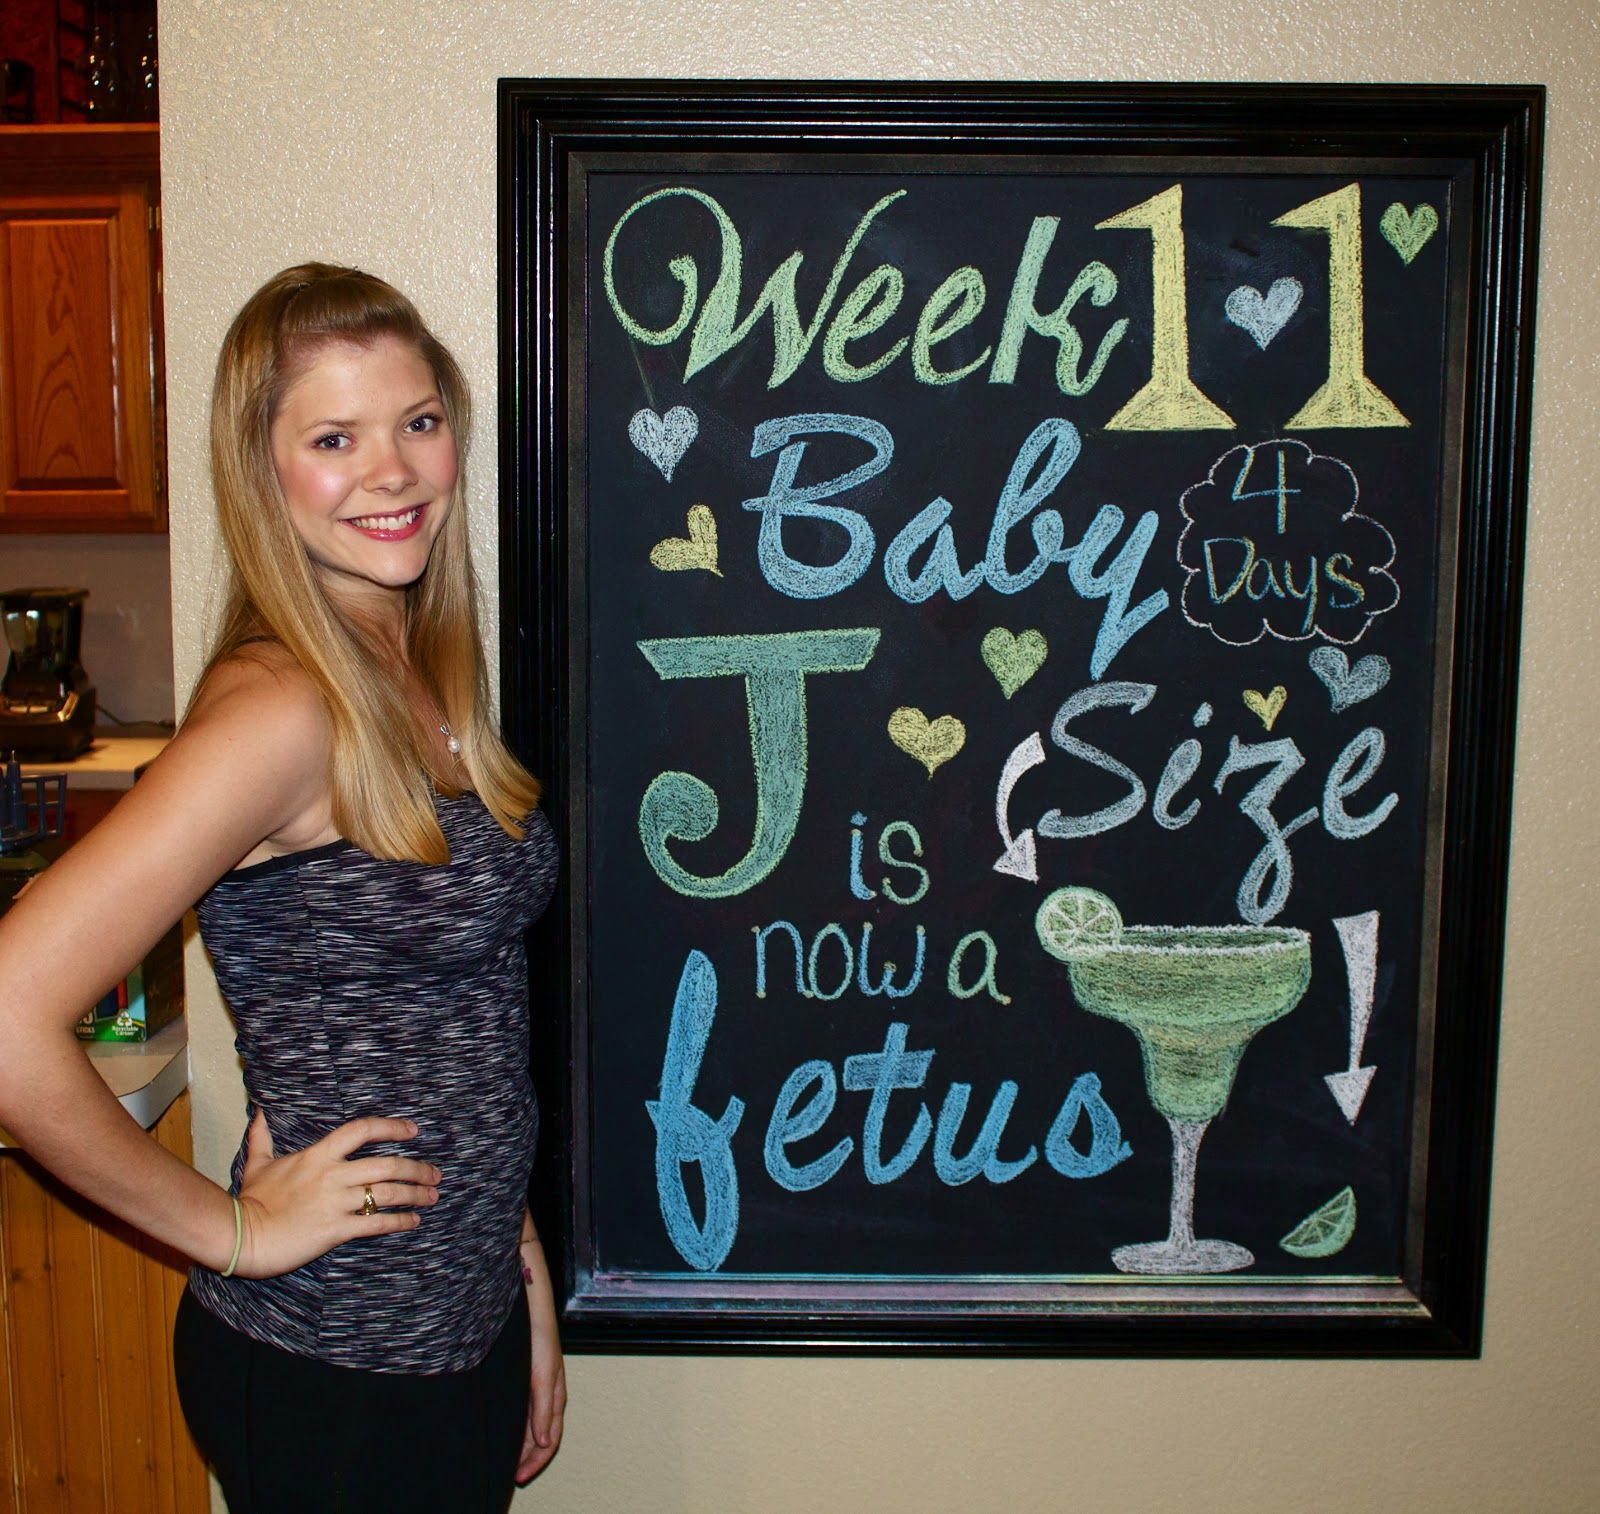 City Girl Meets Country Boy: 11 WEEKS